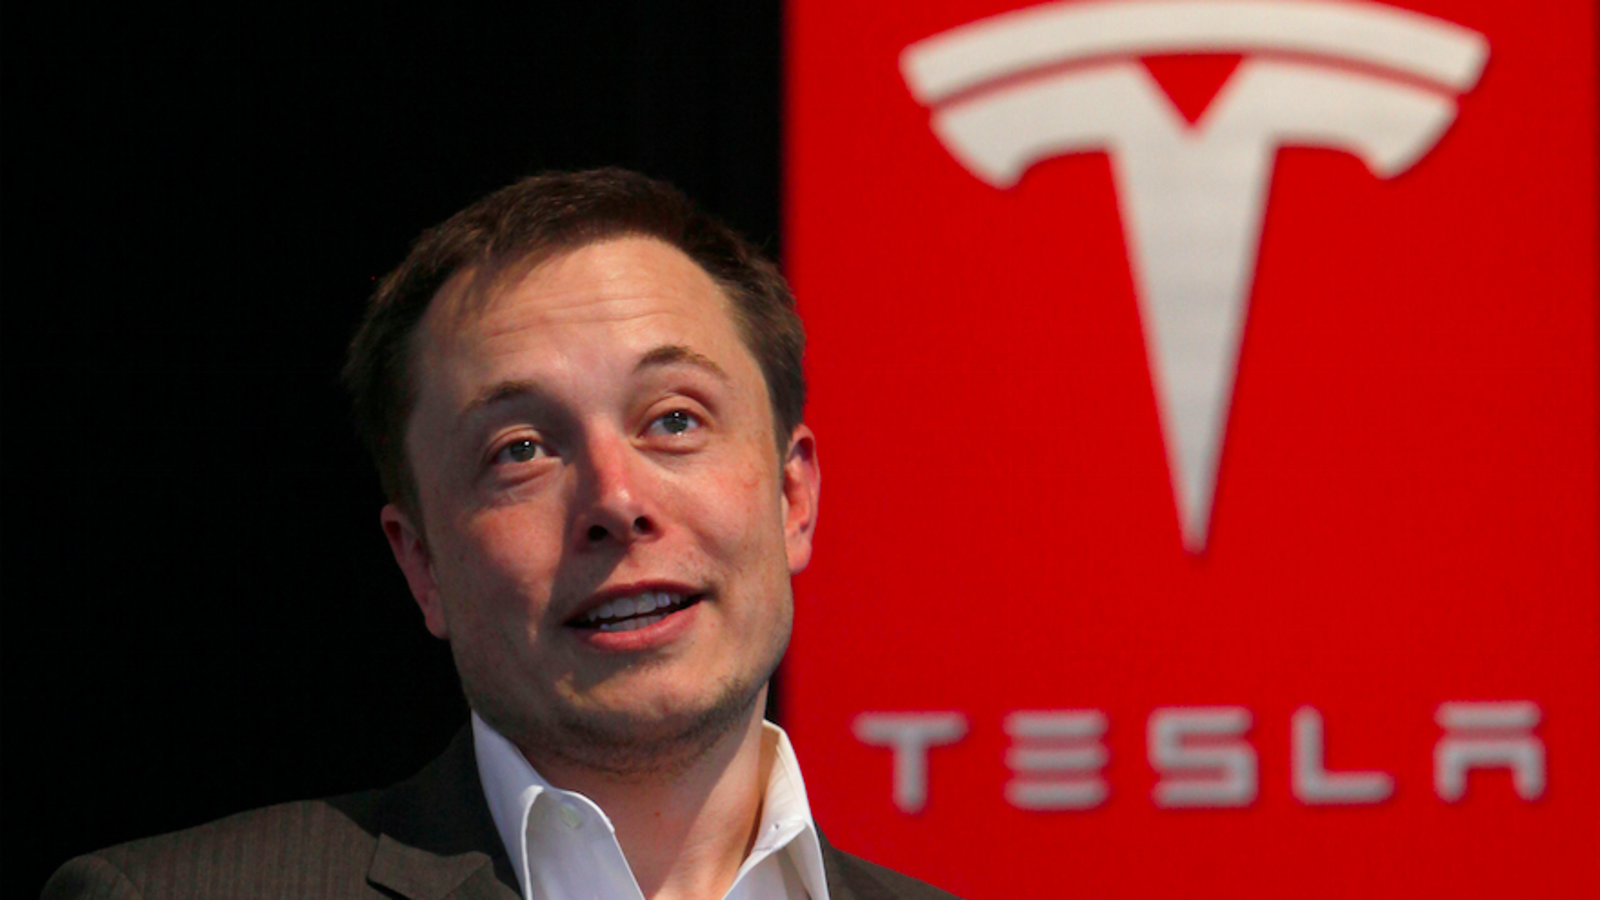 Elon Musk Reportedly Claims 'Extensive And Damaging Sabotage' By Tesla Employee